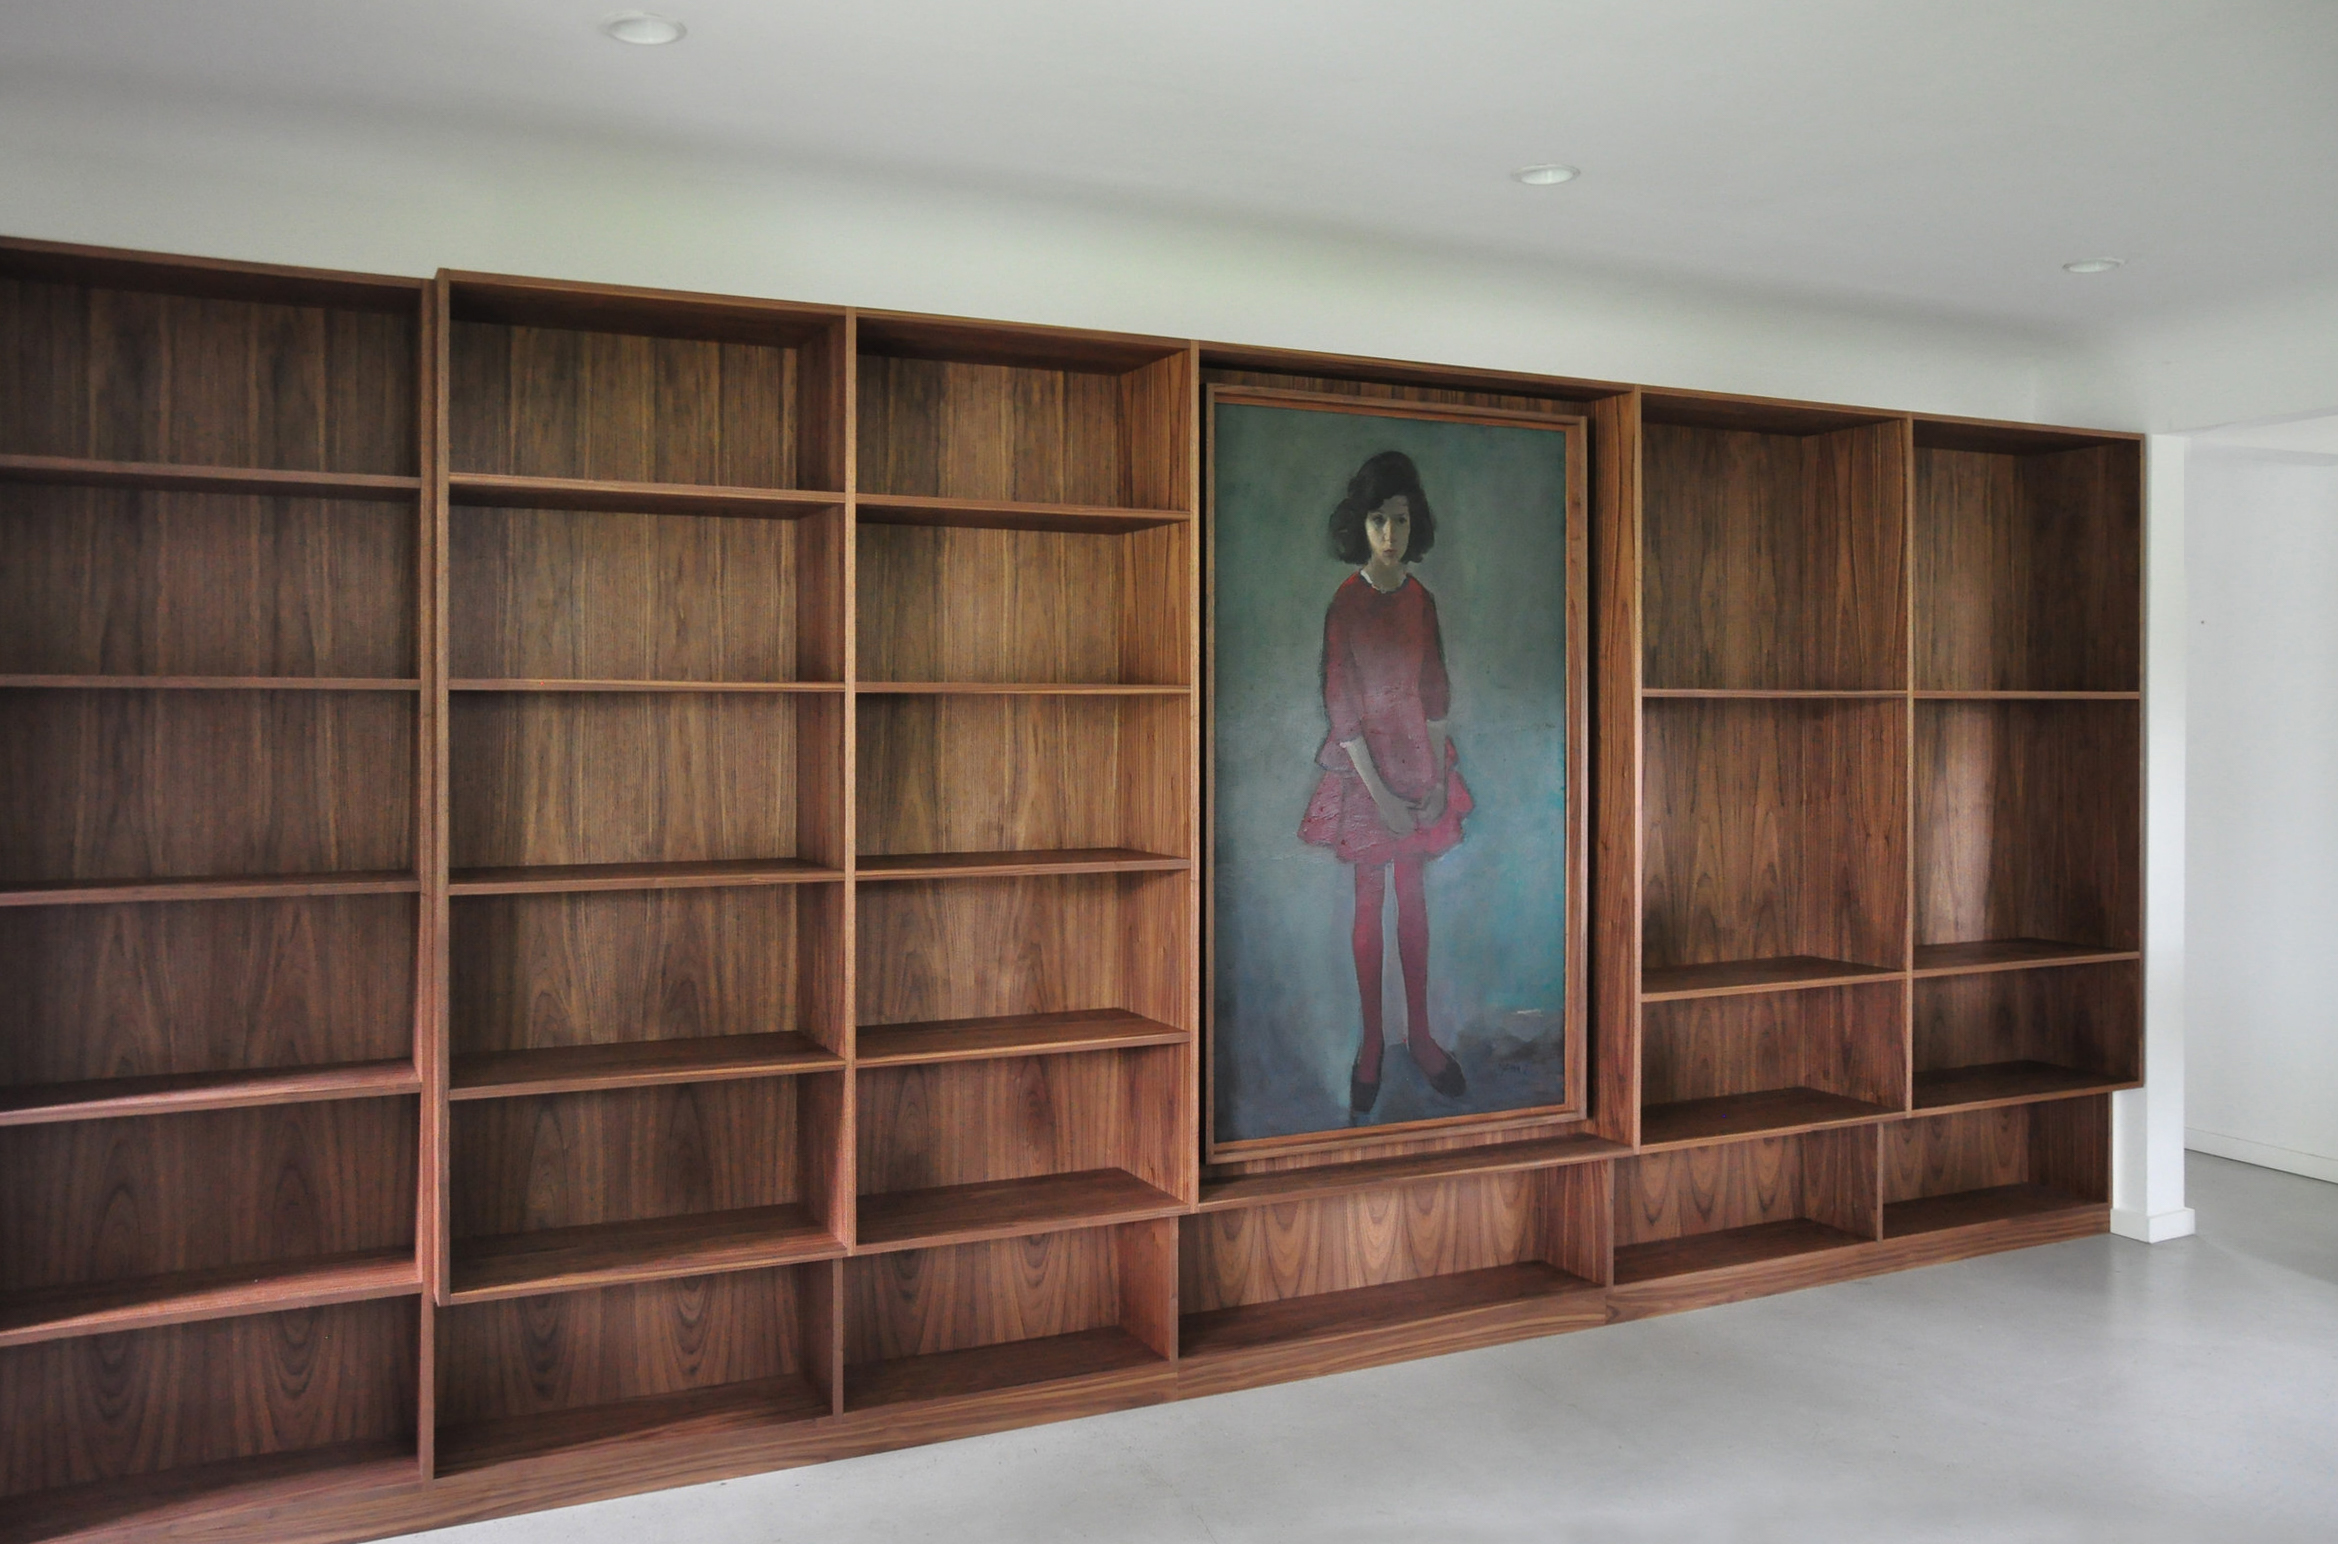 01_TY, Vancouver Furniture Anthill Studio Canada Design Designer Millwork Shelving storage Interior Industrial Renovation Commercial Wood Abet Apartment Condo Architecture Custom Minimal Minimalist Cabinetry Wood Modern Style Cabinet.jpg